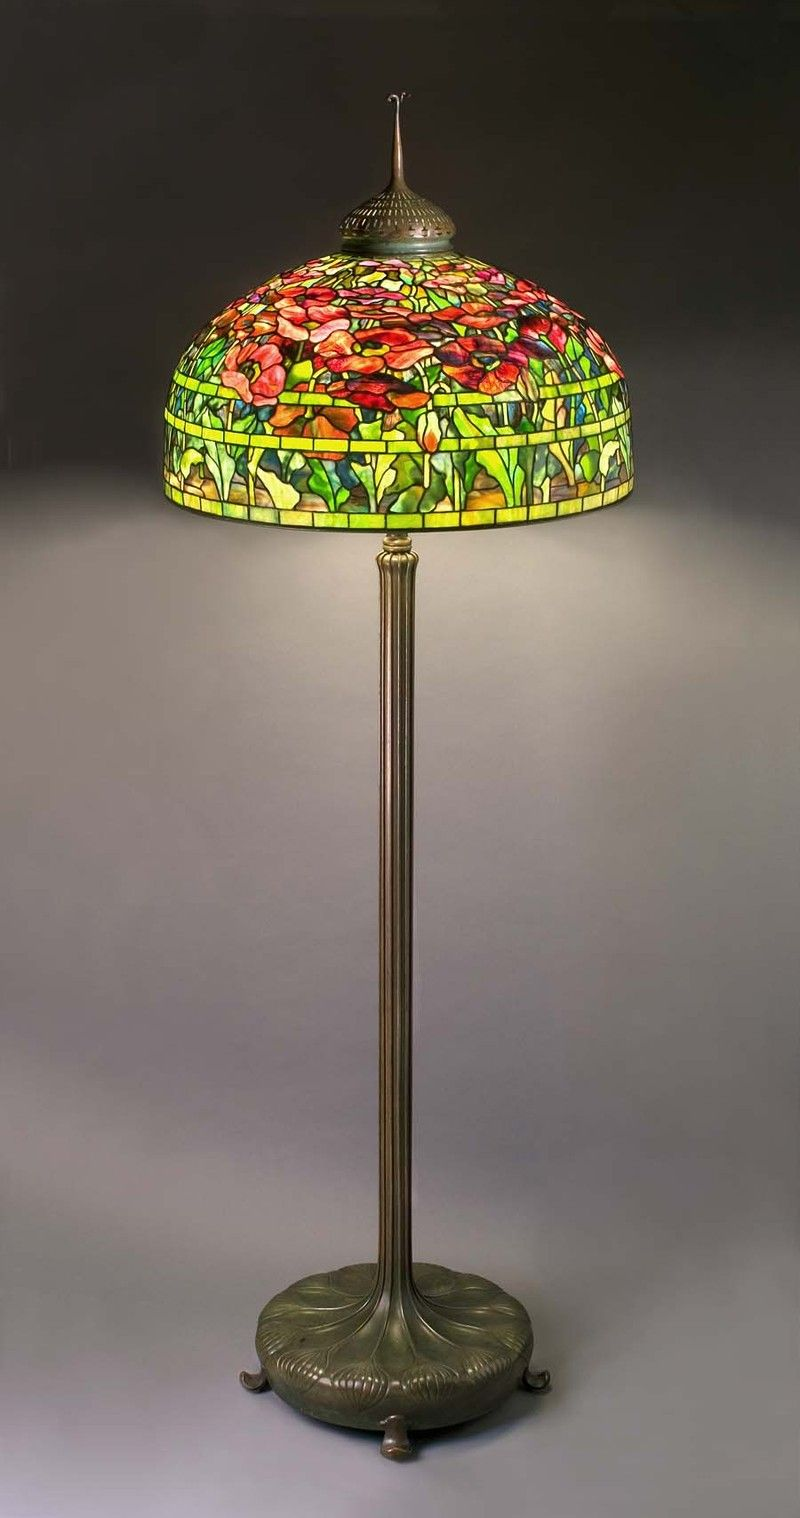 Authentic Tiffany Table Lamps - Tiffany studios 1902 1938 banded poppy floor lamp after 1906